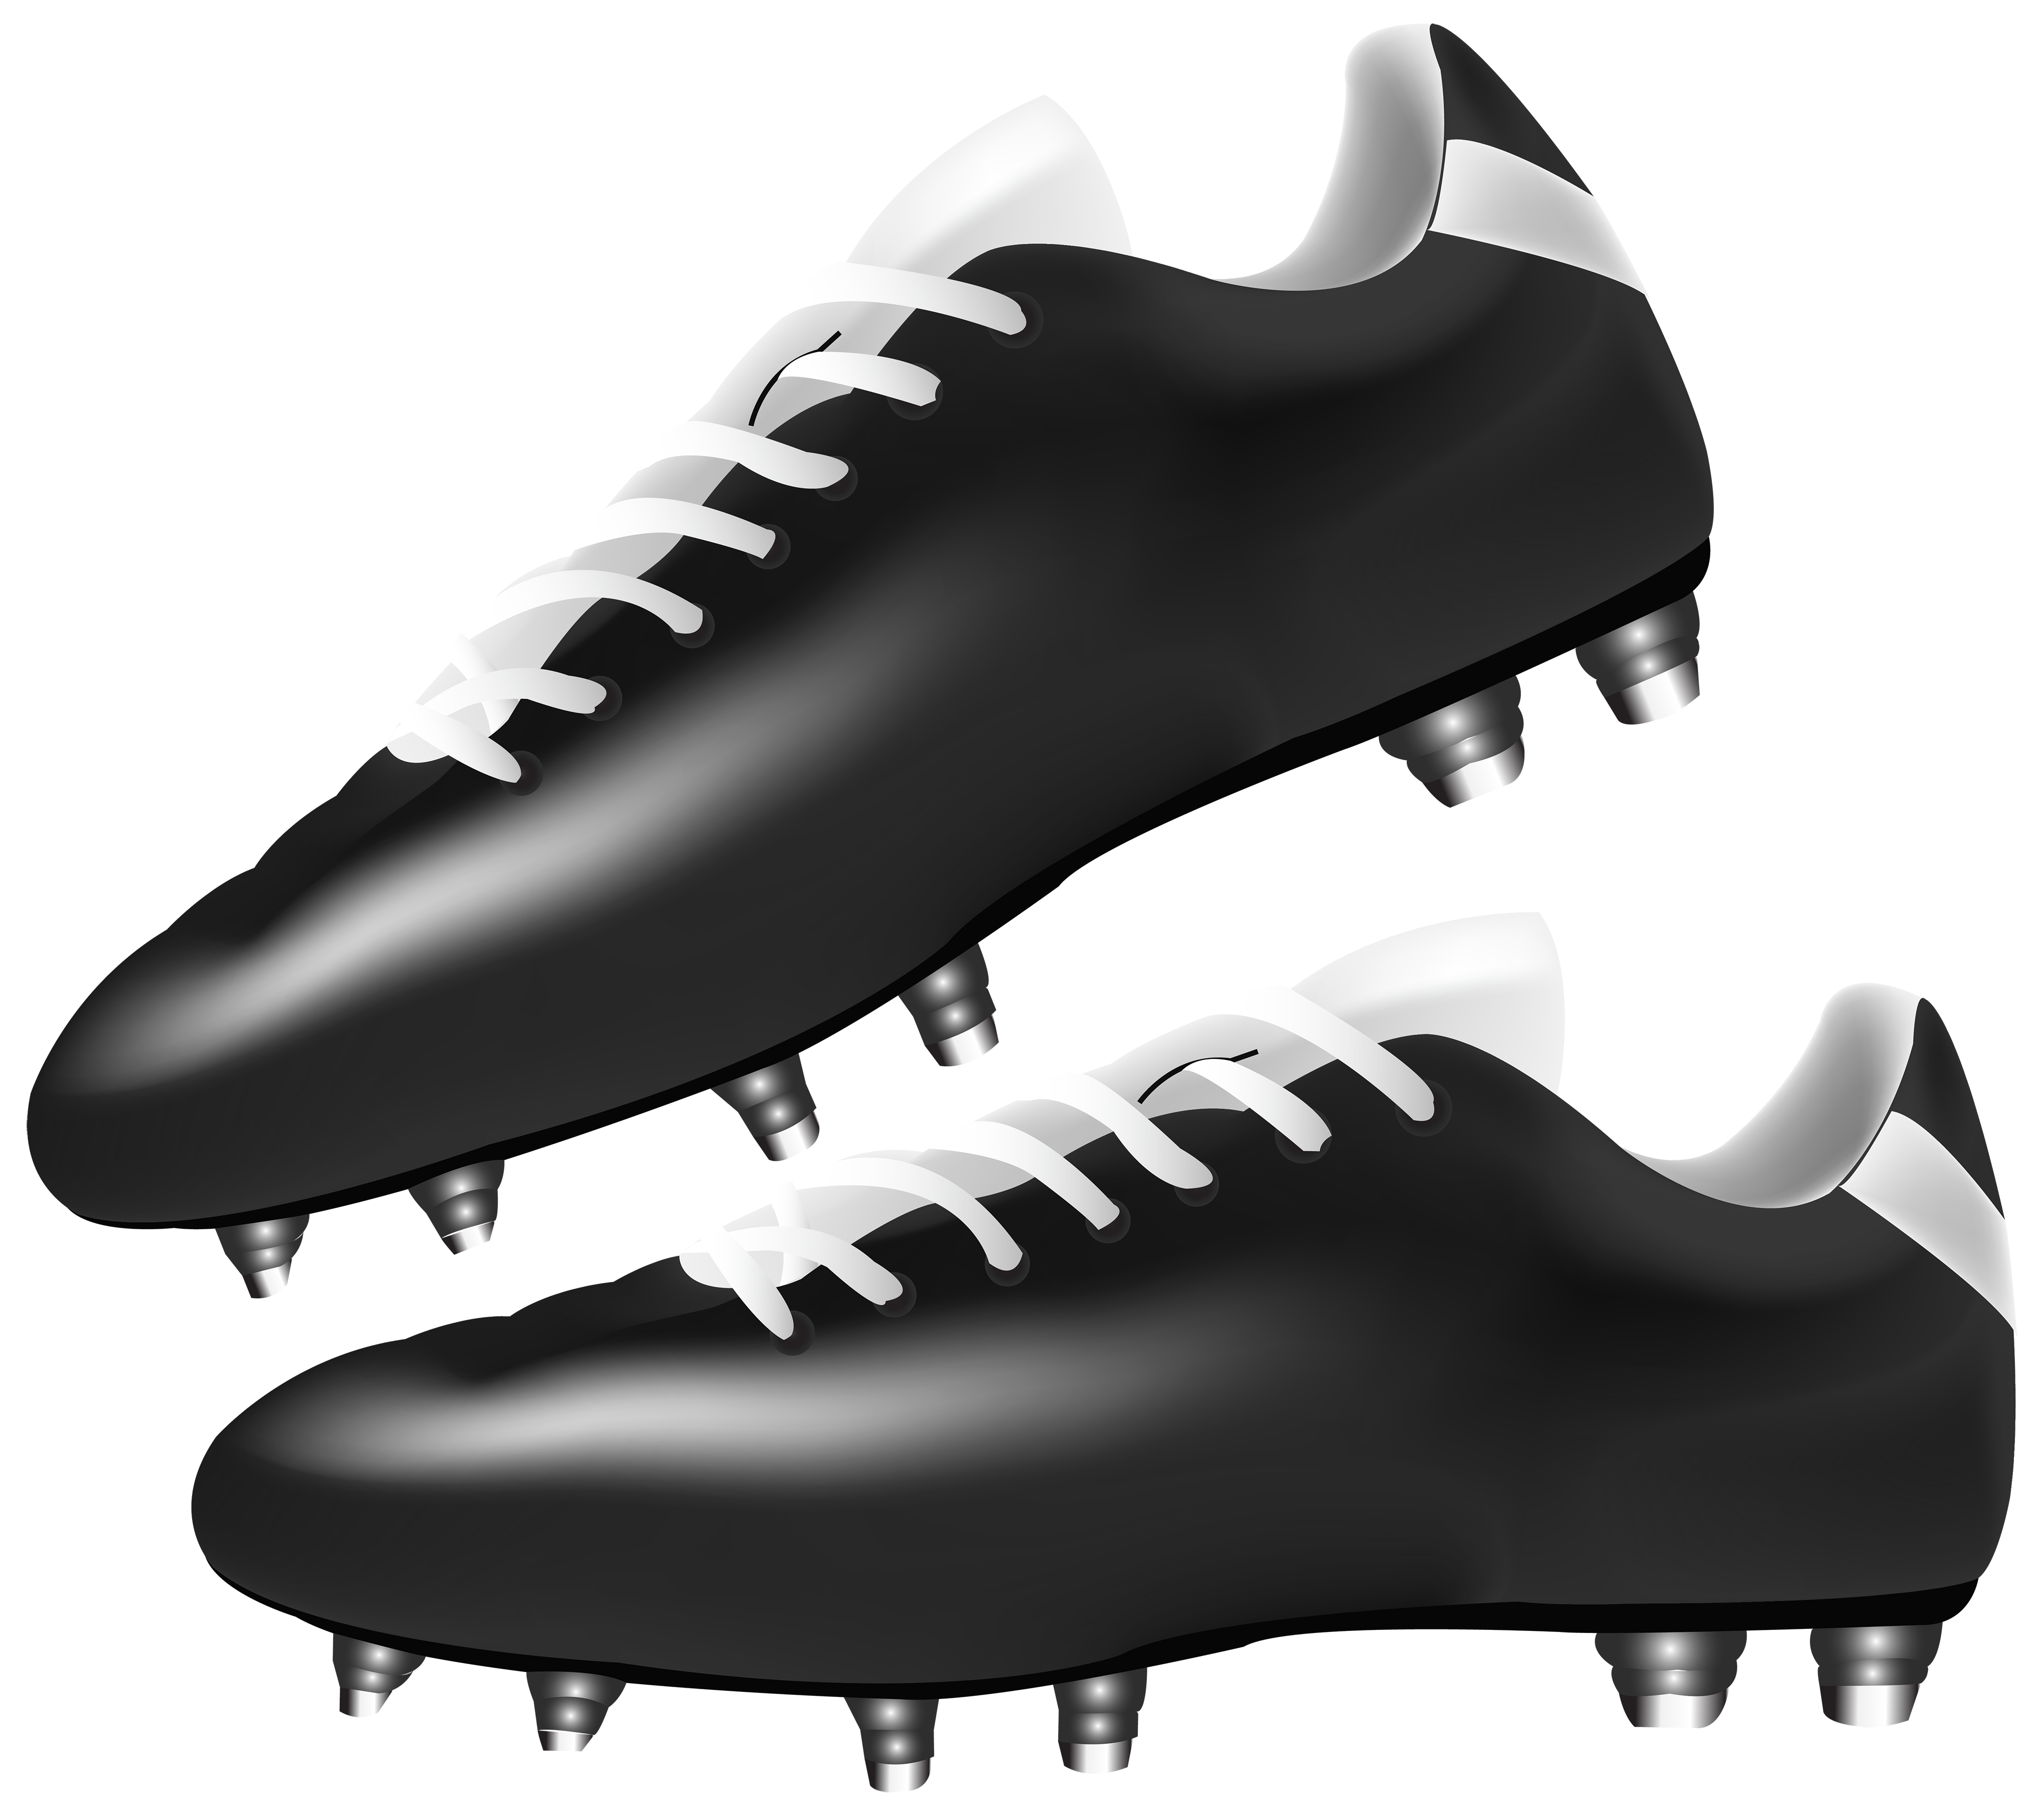 American football cleats clipart clipart freeuse Football boot clipart - Clipground clipart freeuse